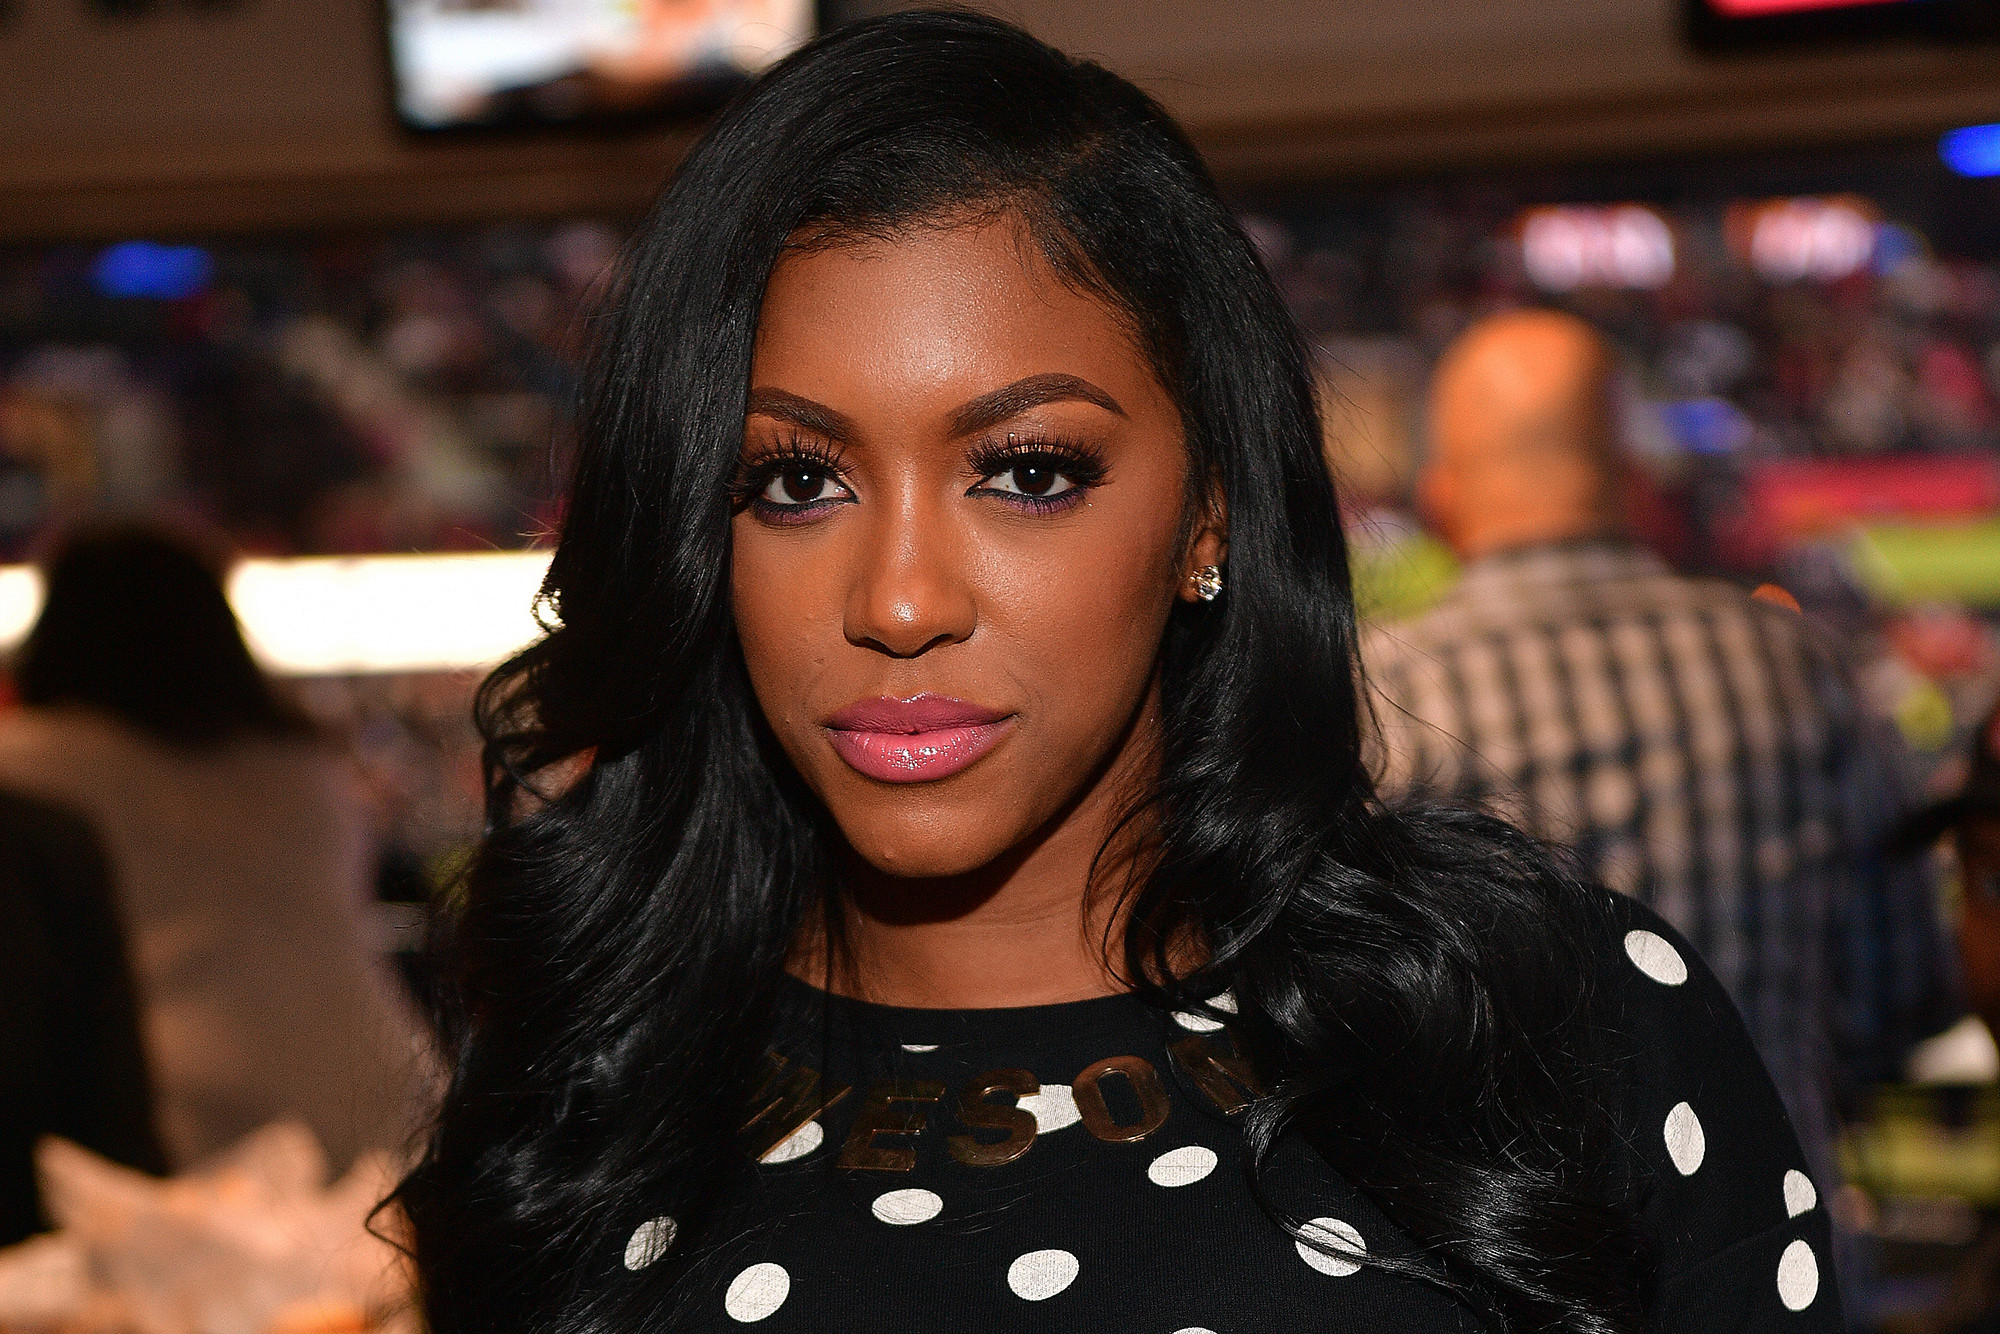 Porsha Williams Has A Message About True Friendship